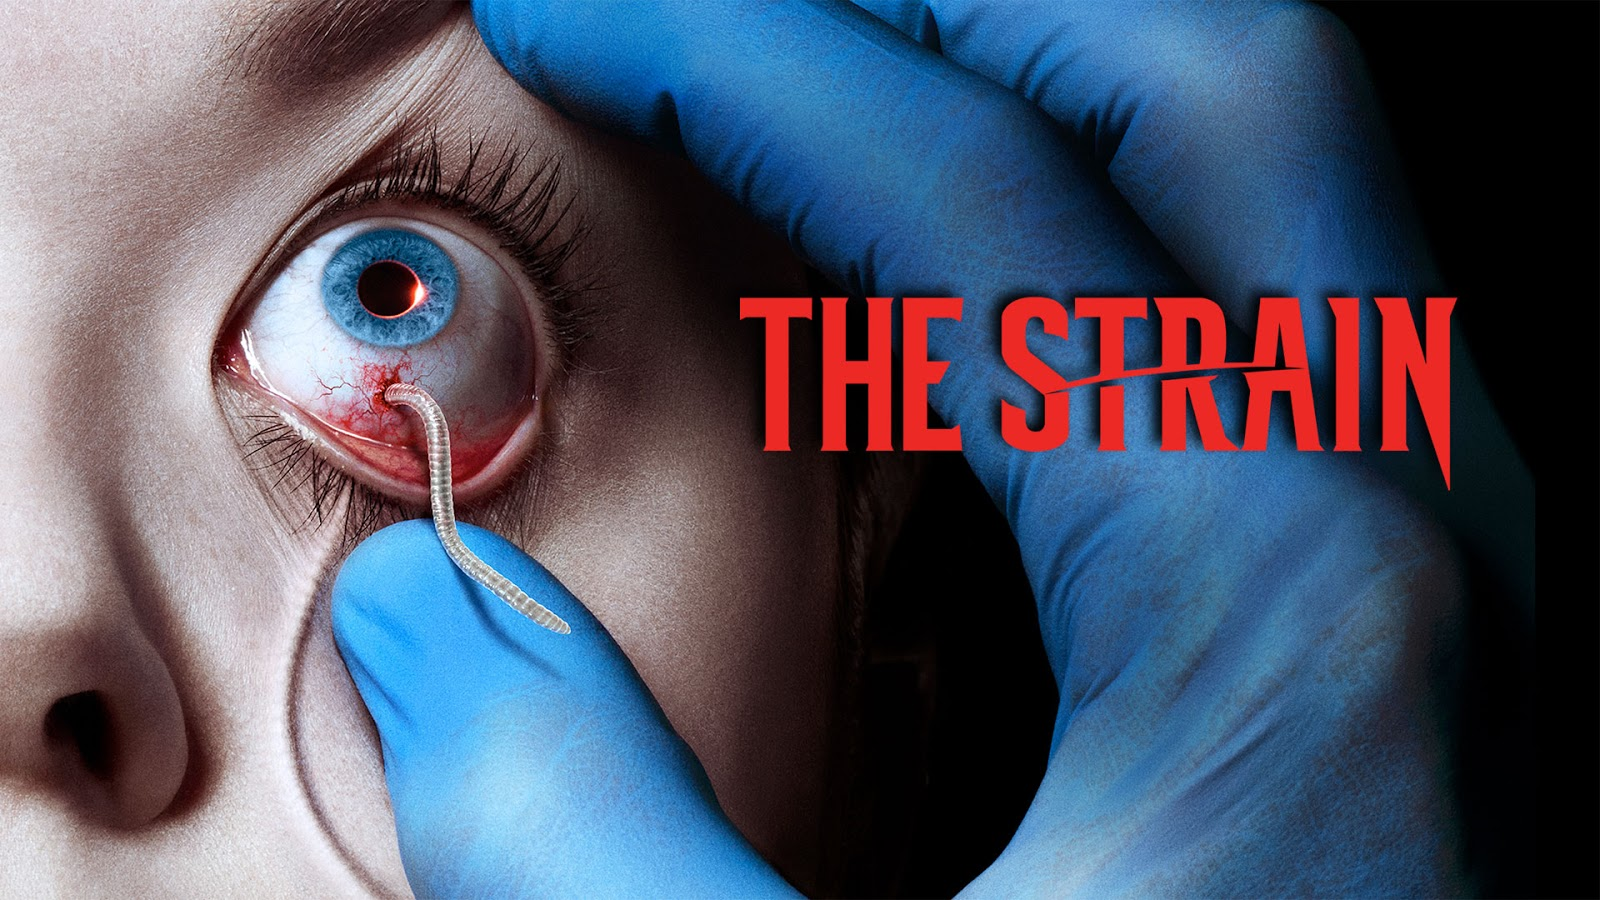 The strain. Poster.